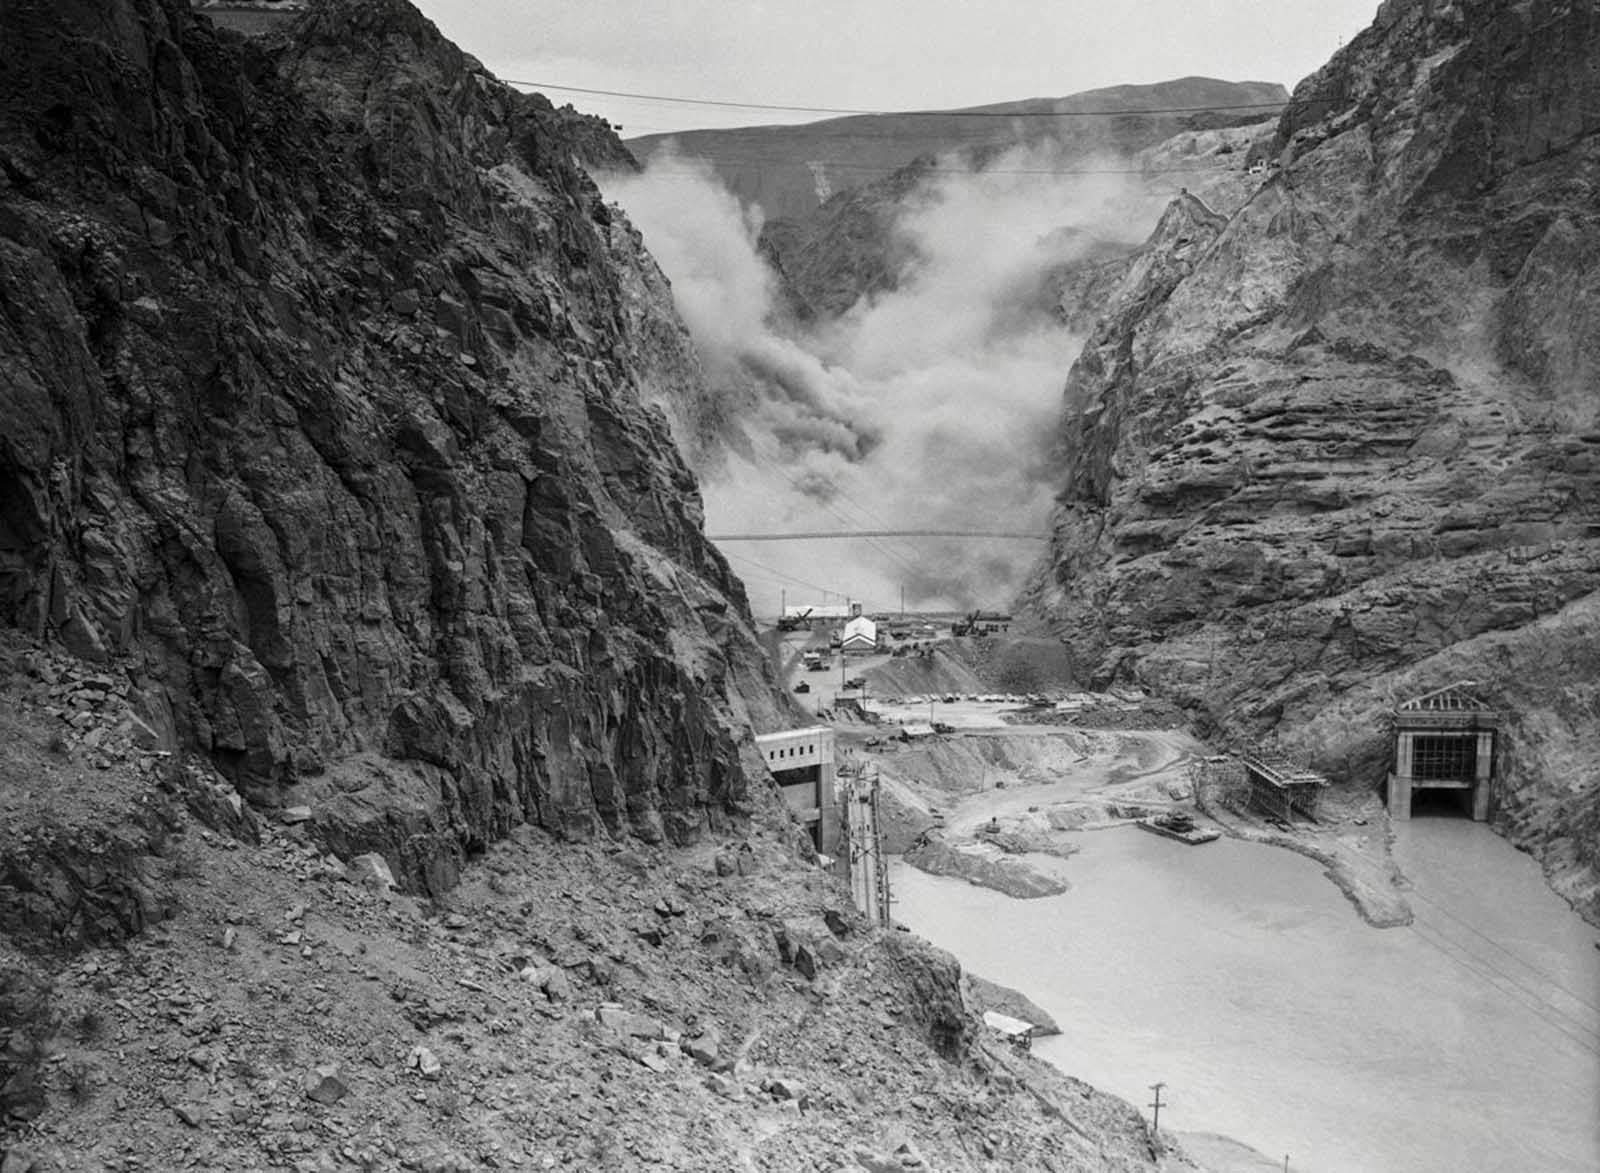 Four tons of dynamite are detonated in the canyon in the early stages of construction. May 12, 1933.